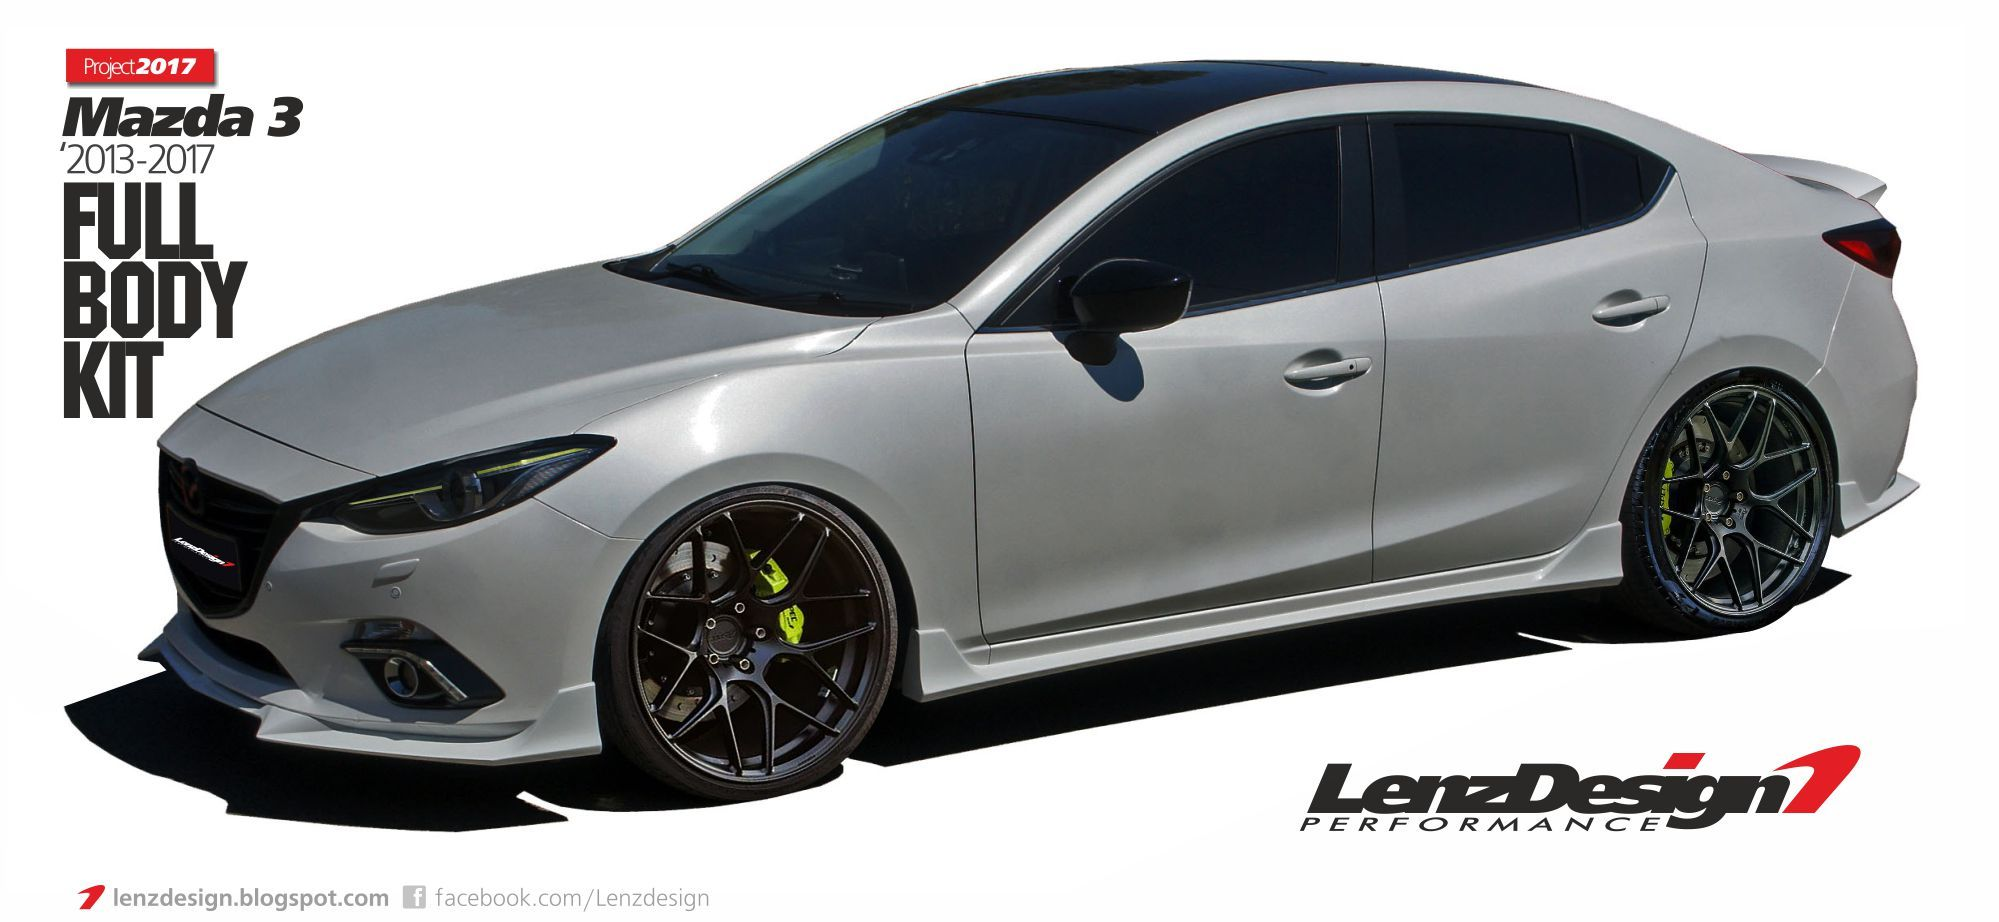 Mazda 3 bm axela 2013 2014 2015 2016 2017 tuning body kit lenzdesign performance